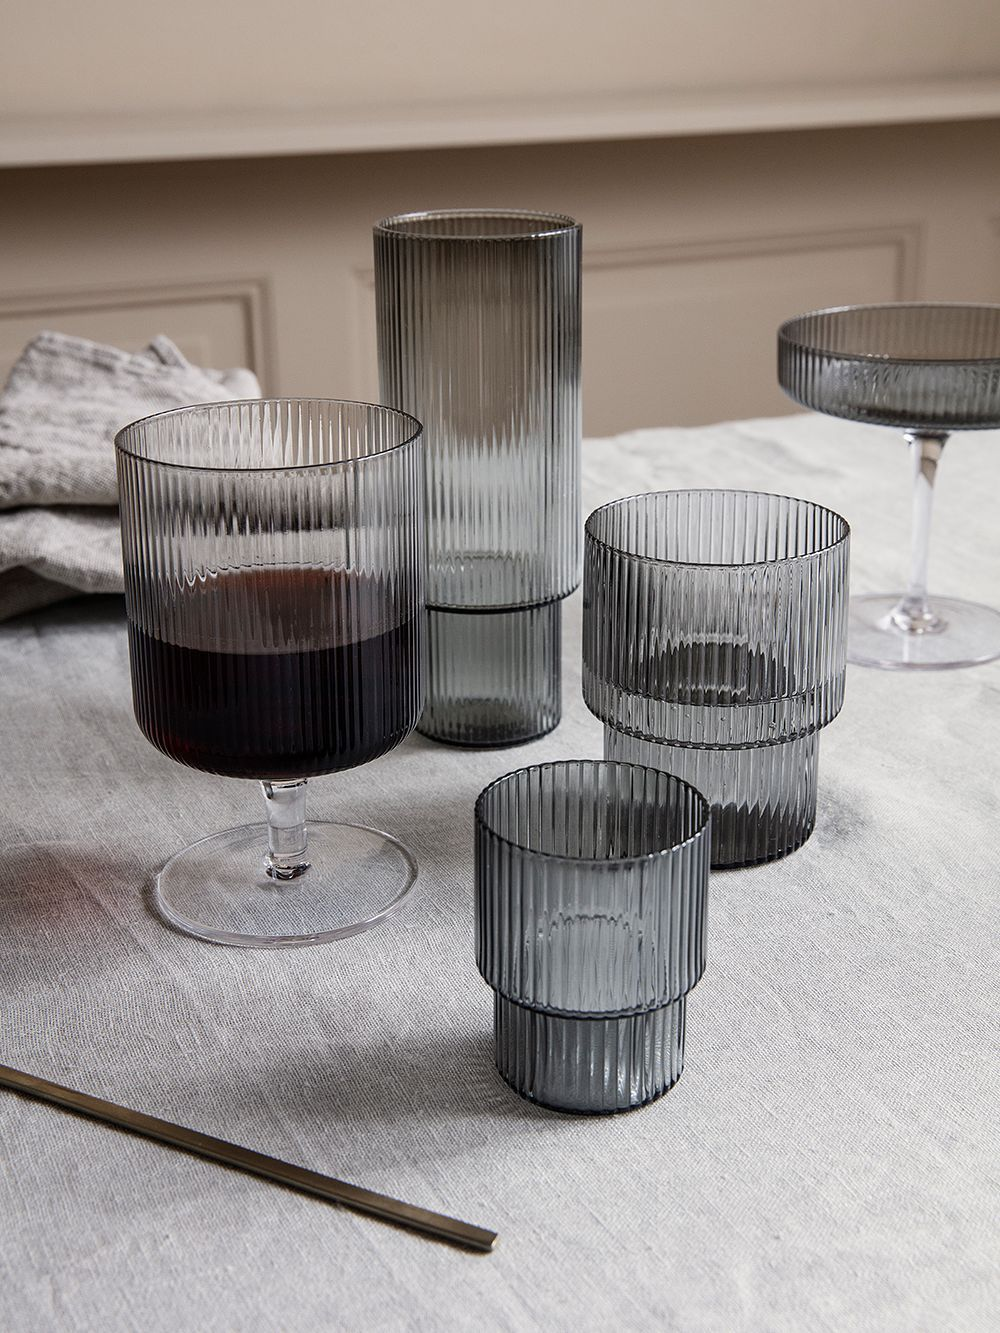 Ferm Living S Founder Trine Andersen We Want To Make You Feel Comfortable At Home Ferm Living Modern Tableware Drink Glasses Set